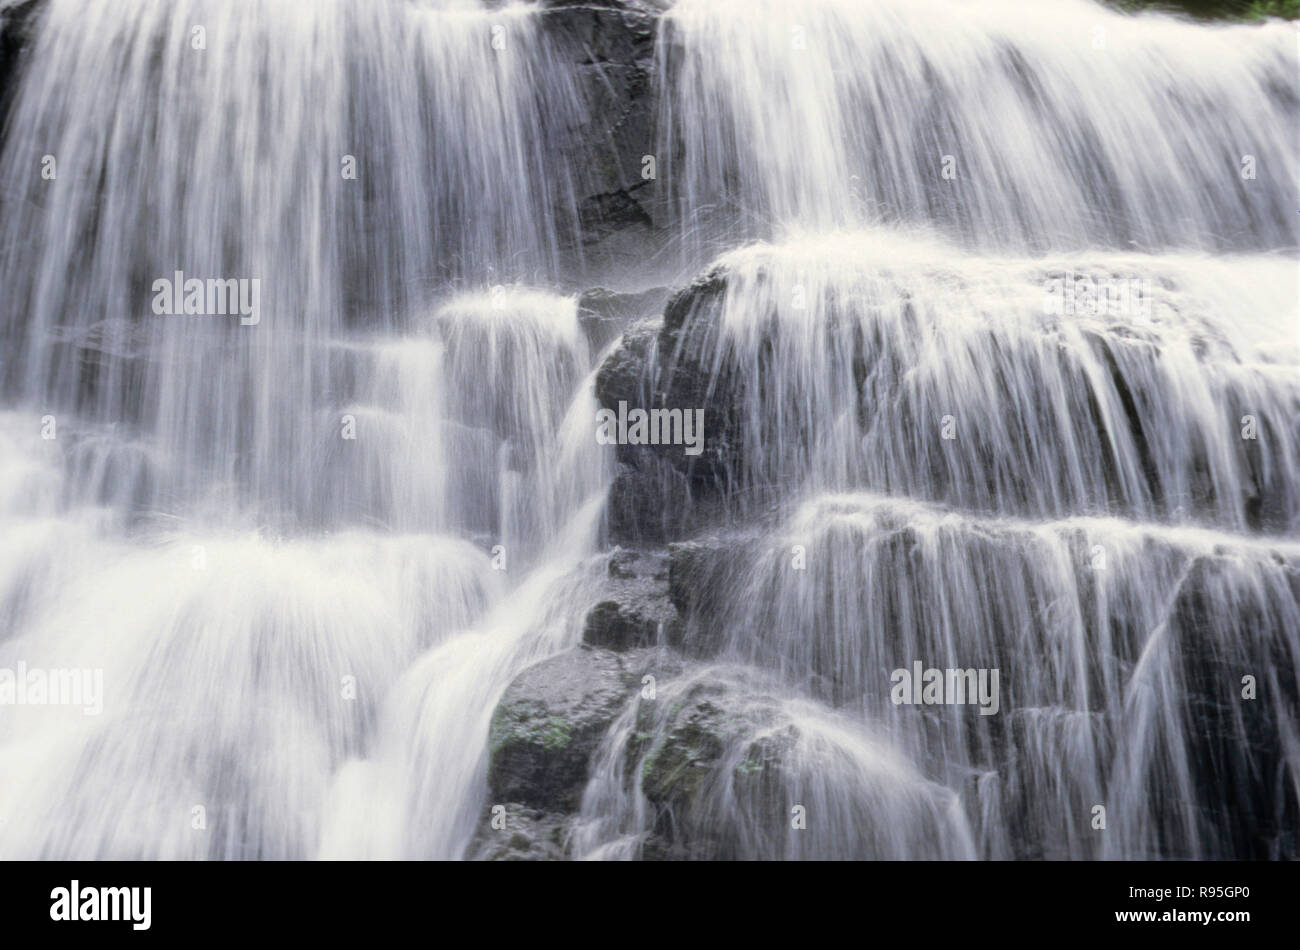 Waterfall - Stock Image